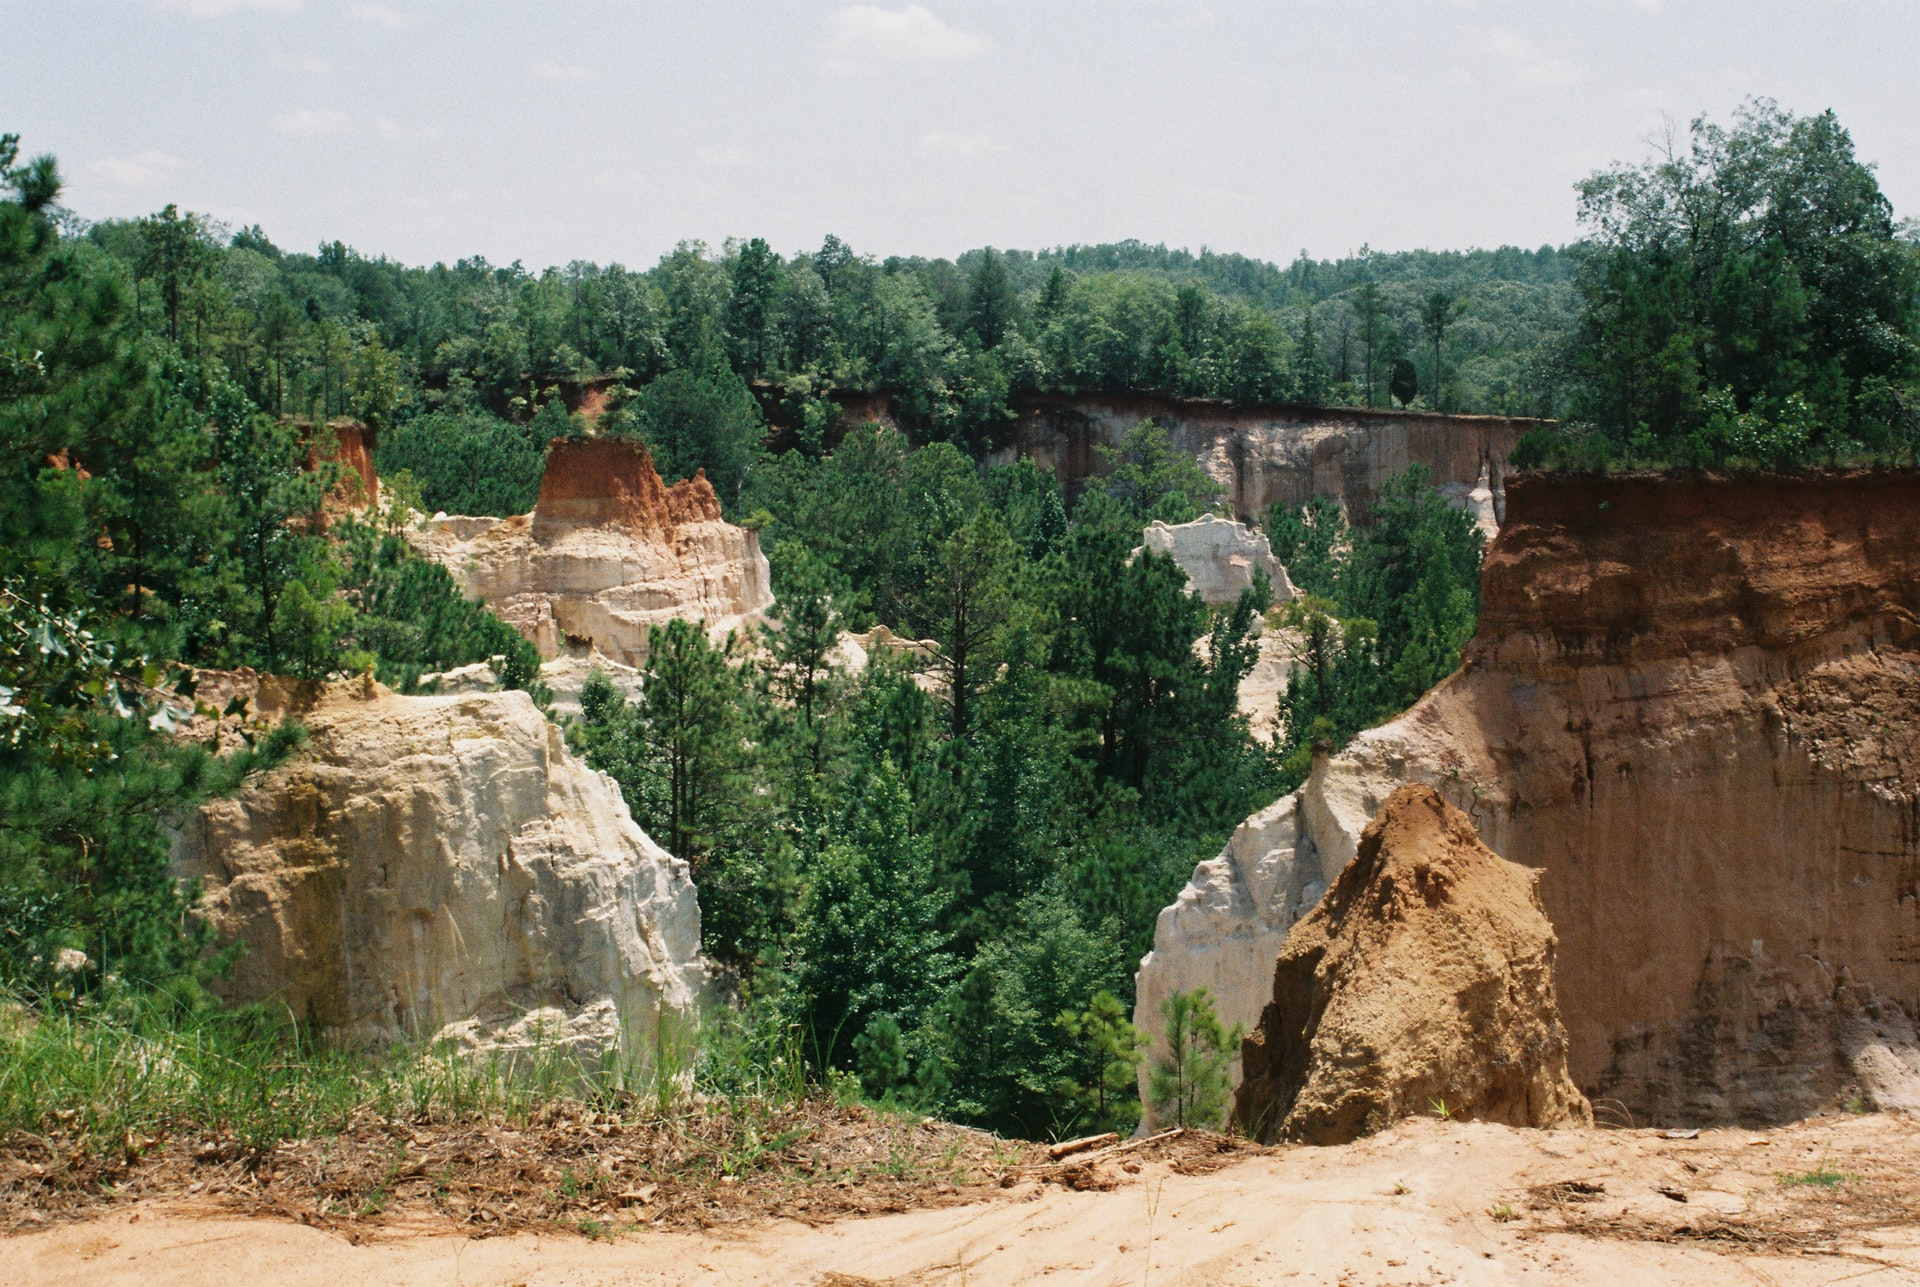 Providence Canyon in Georgia, which was formed by geological changes in the area